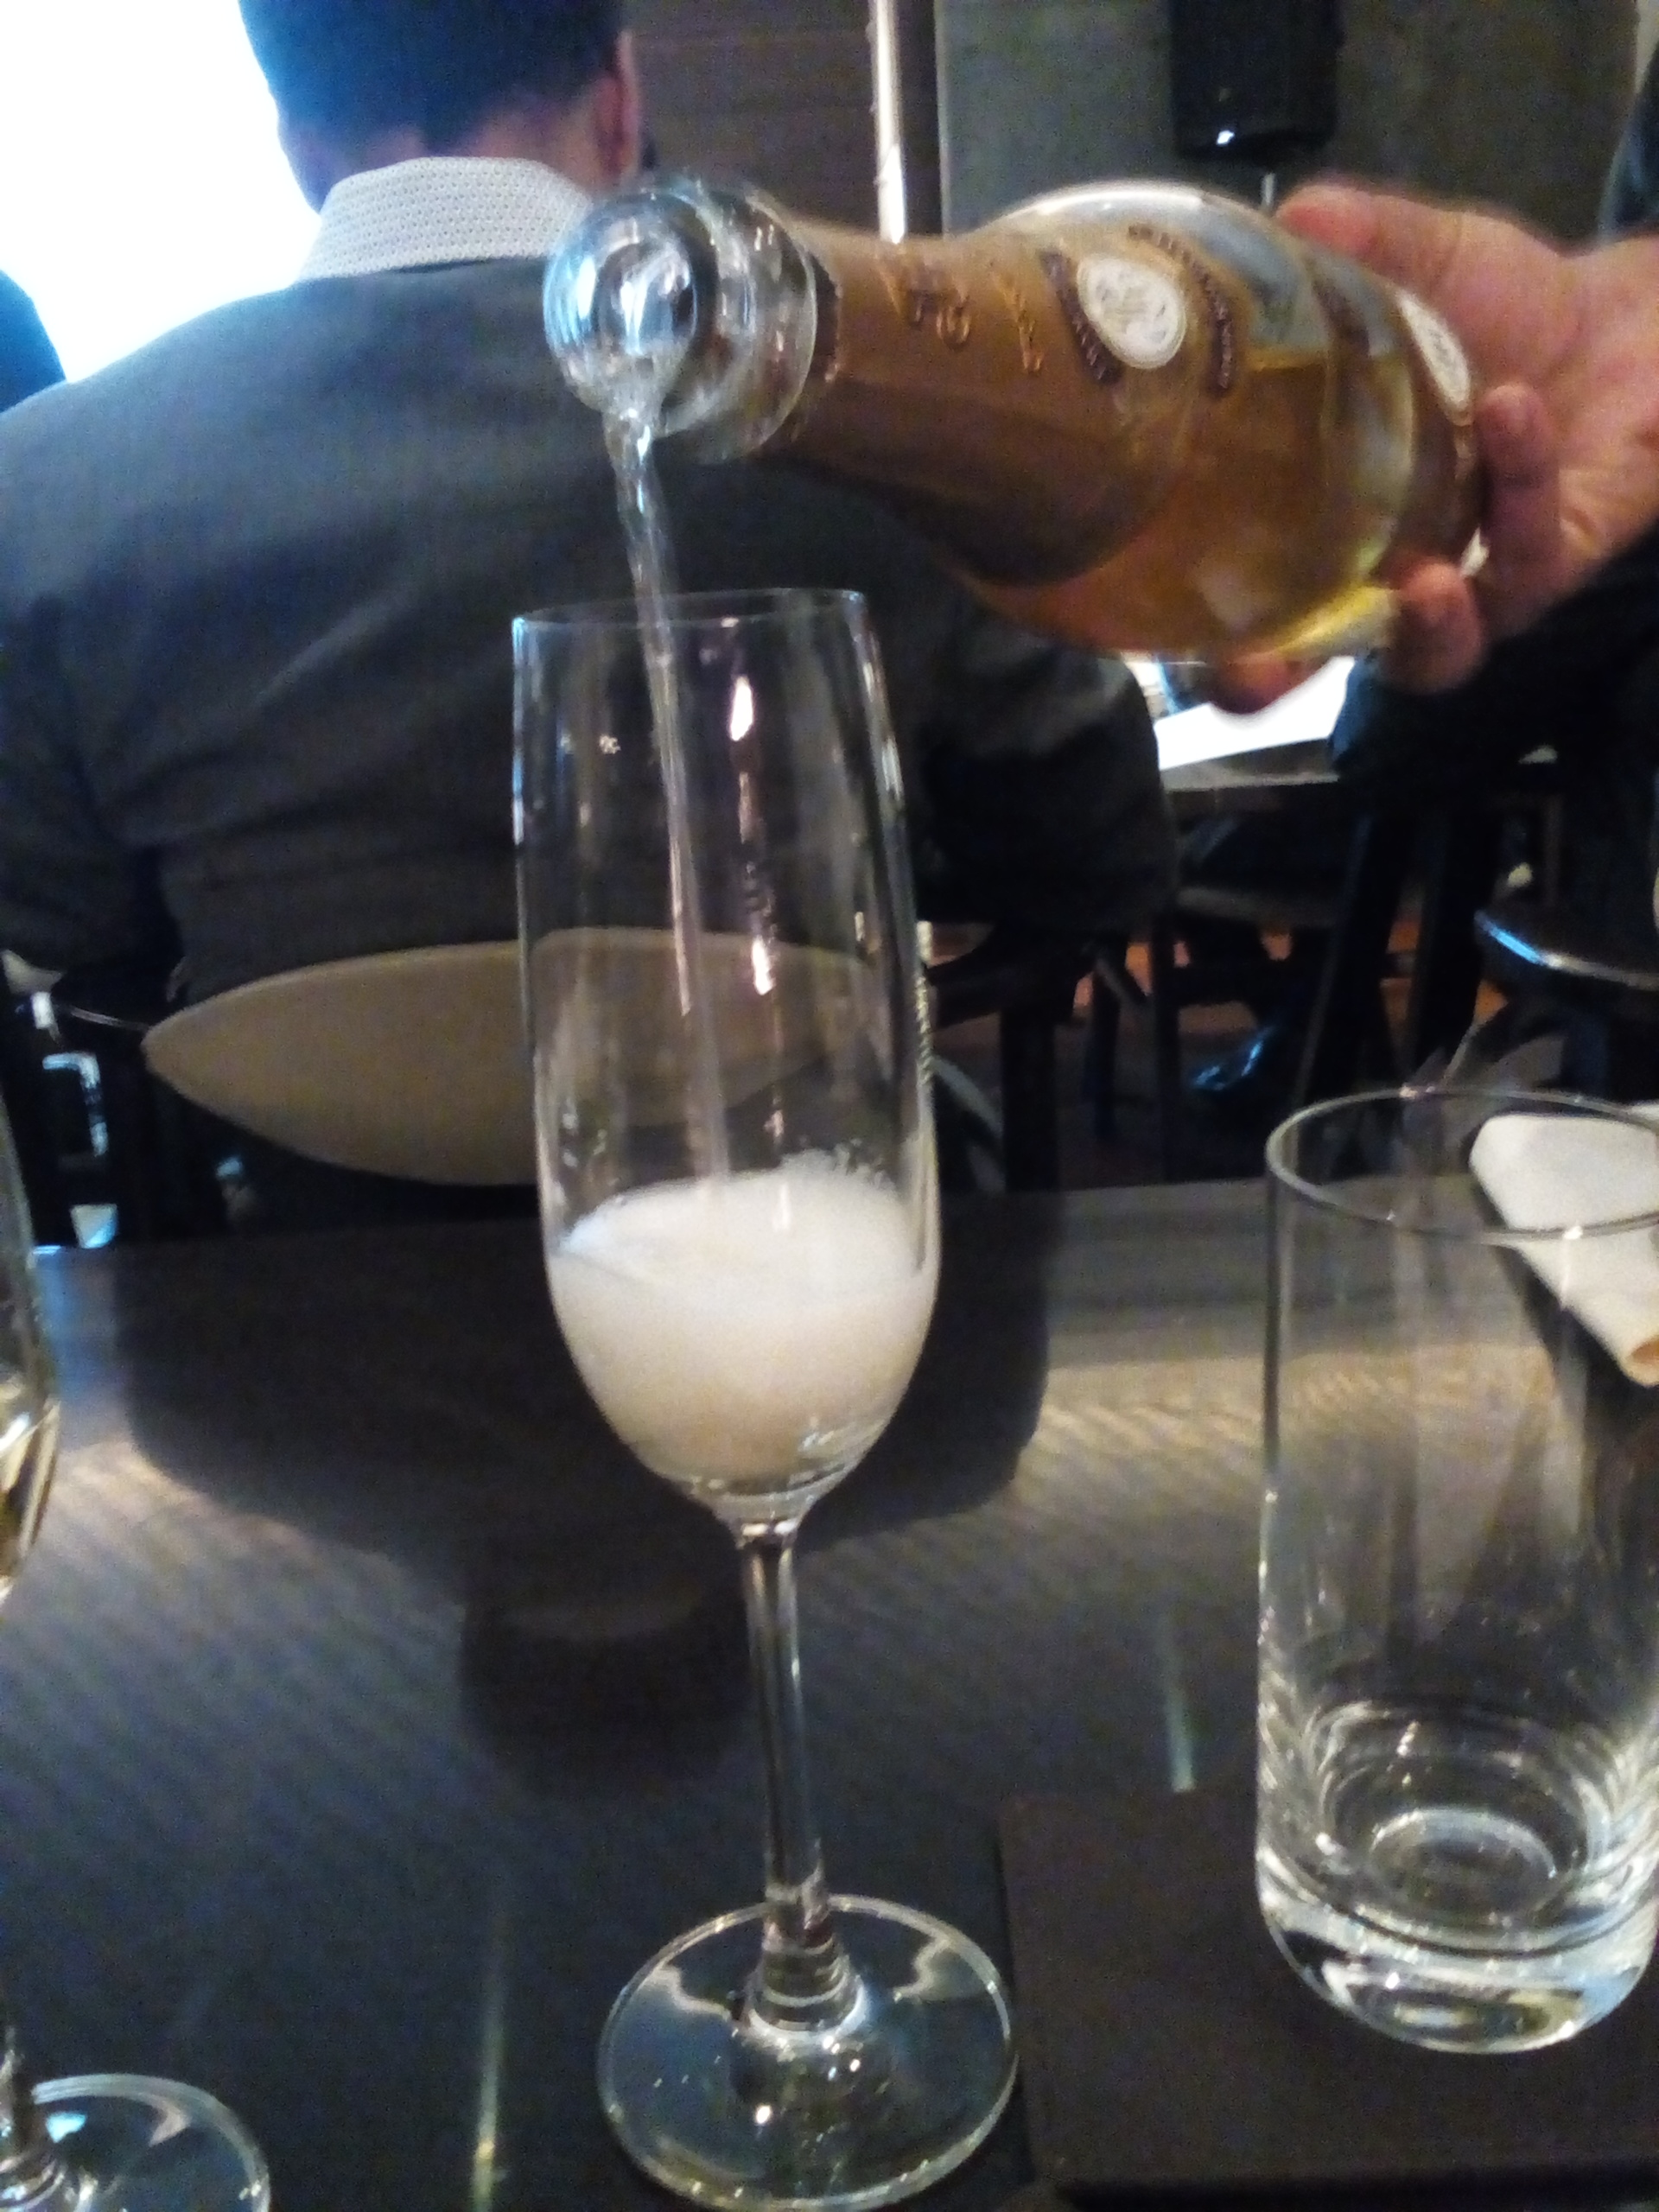 The Cristal 2009 being Poured